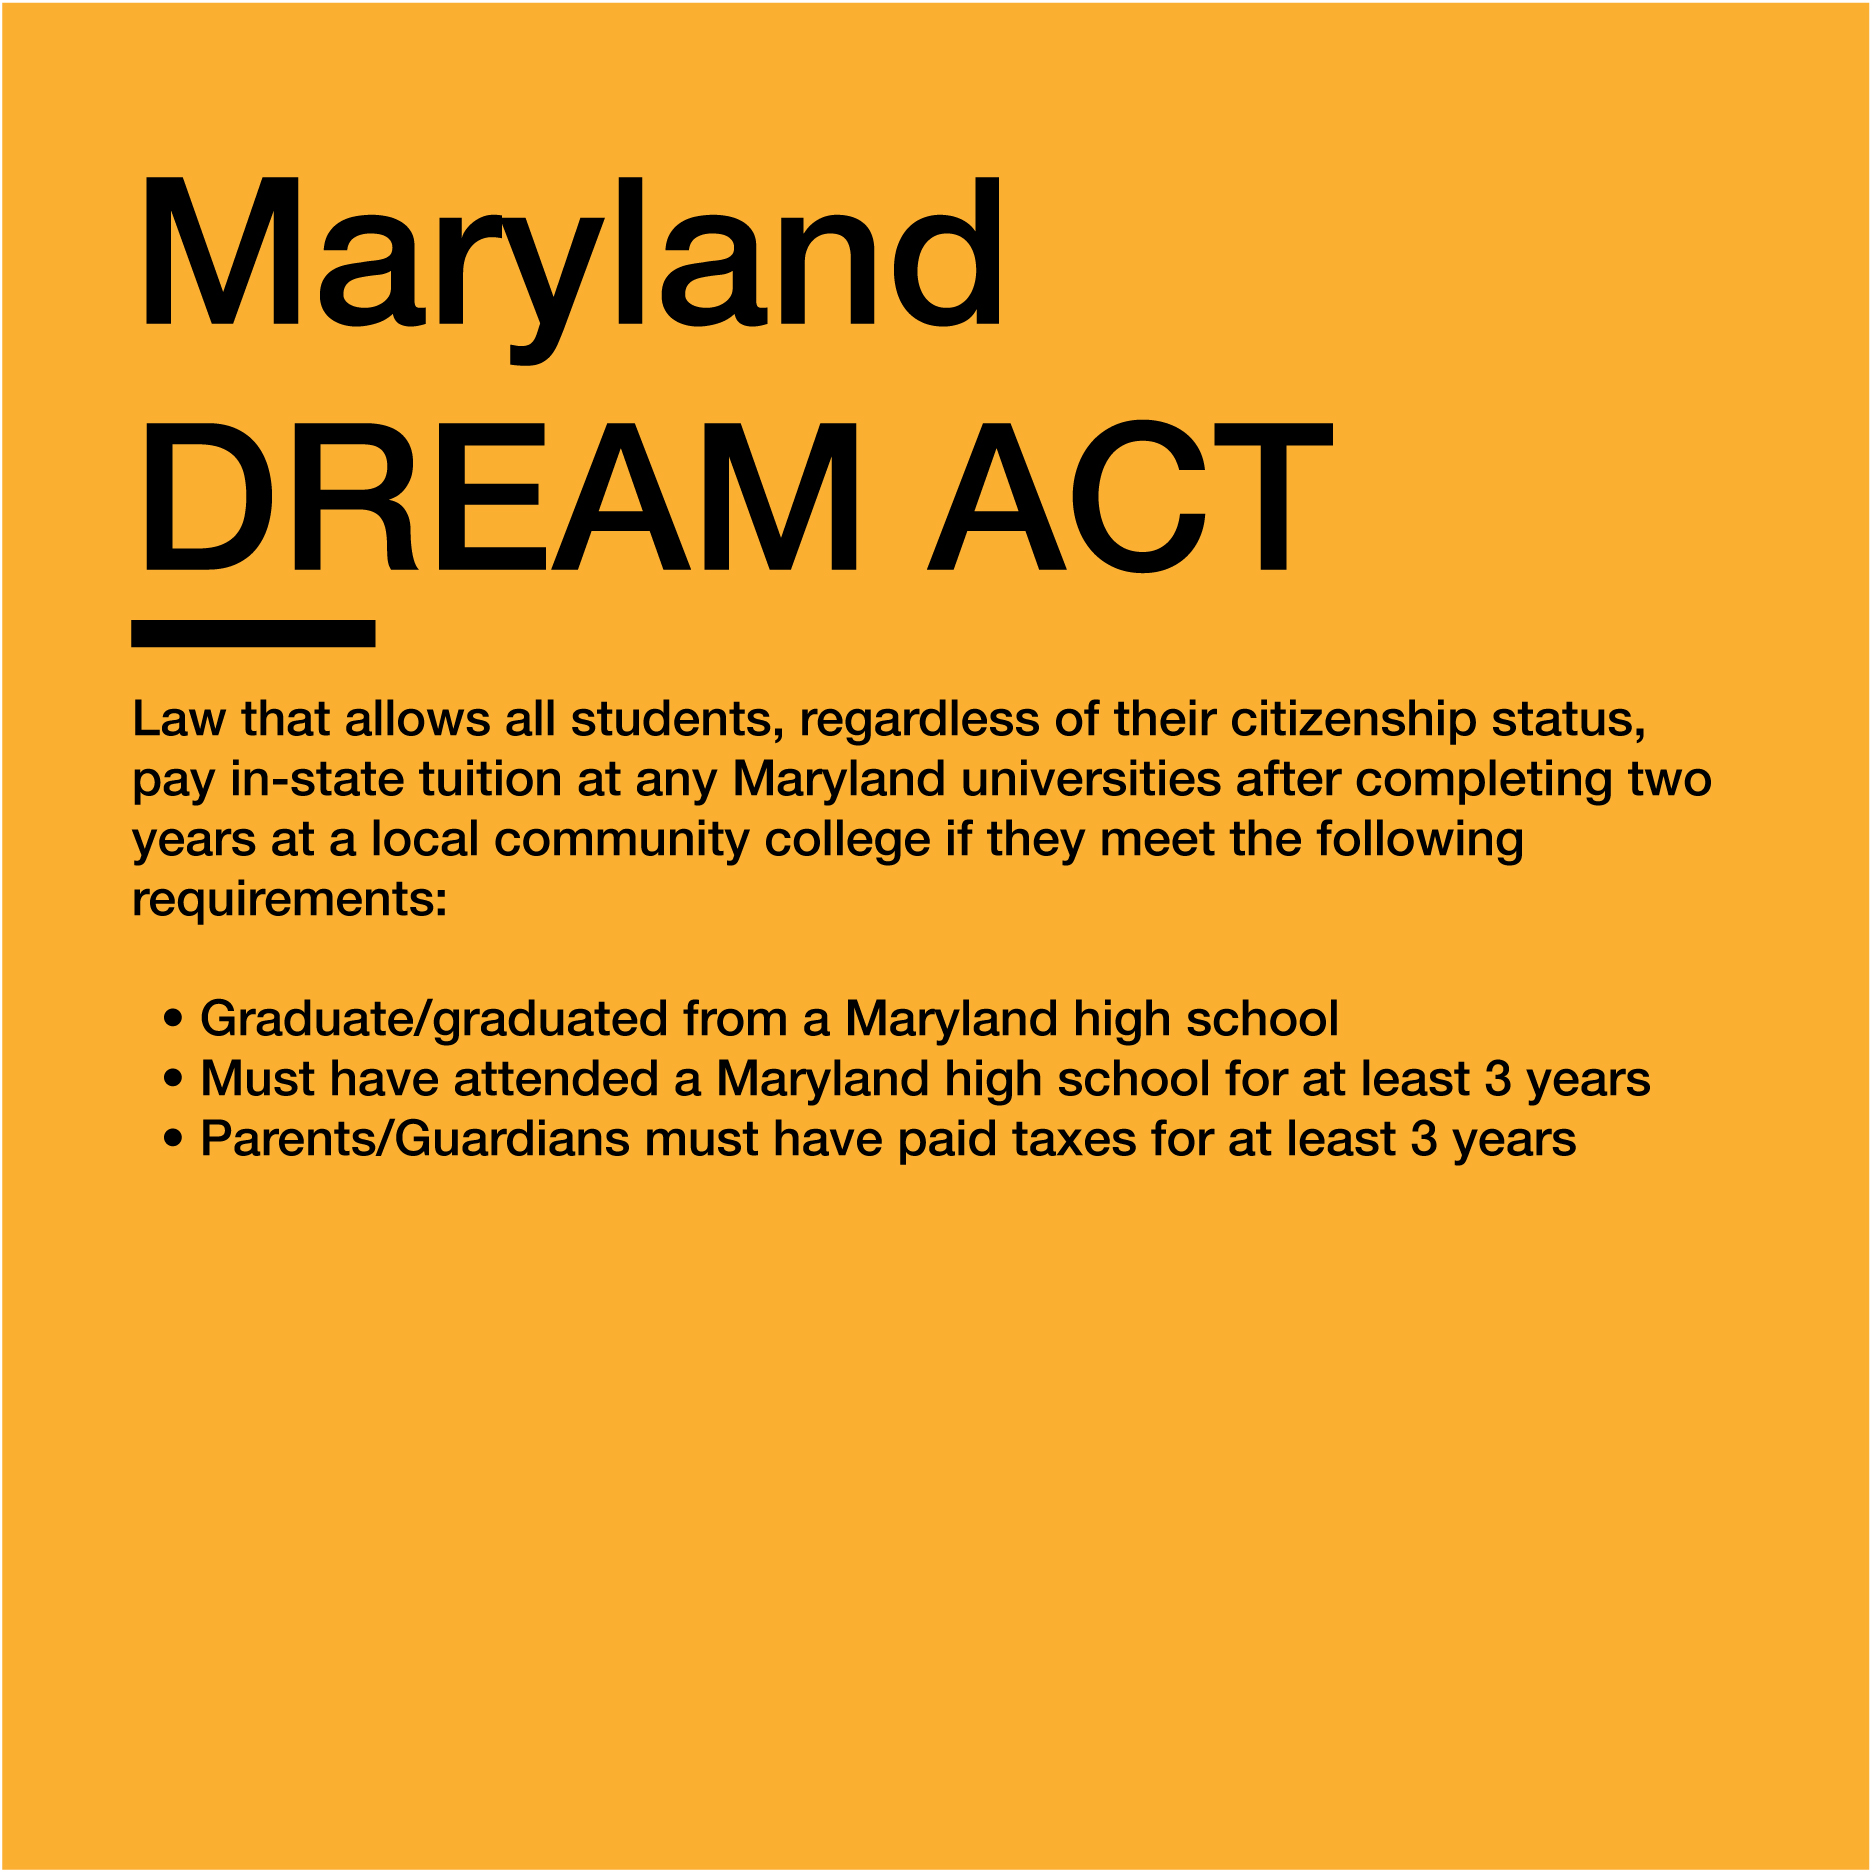 More Info:    https://www.aclu-md.org/en/maryland-dream-act